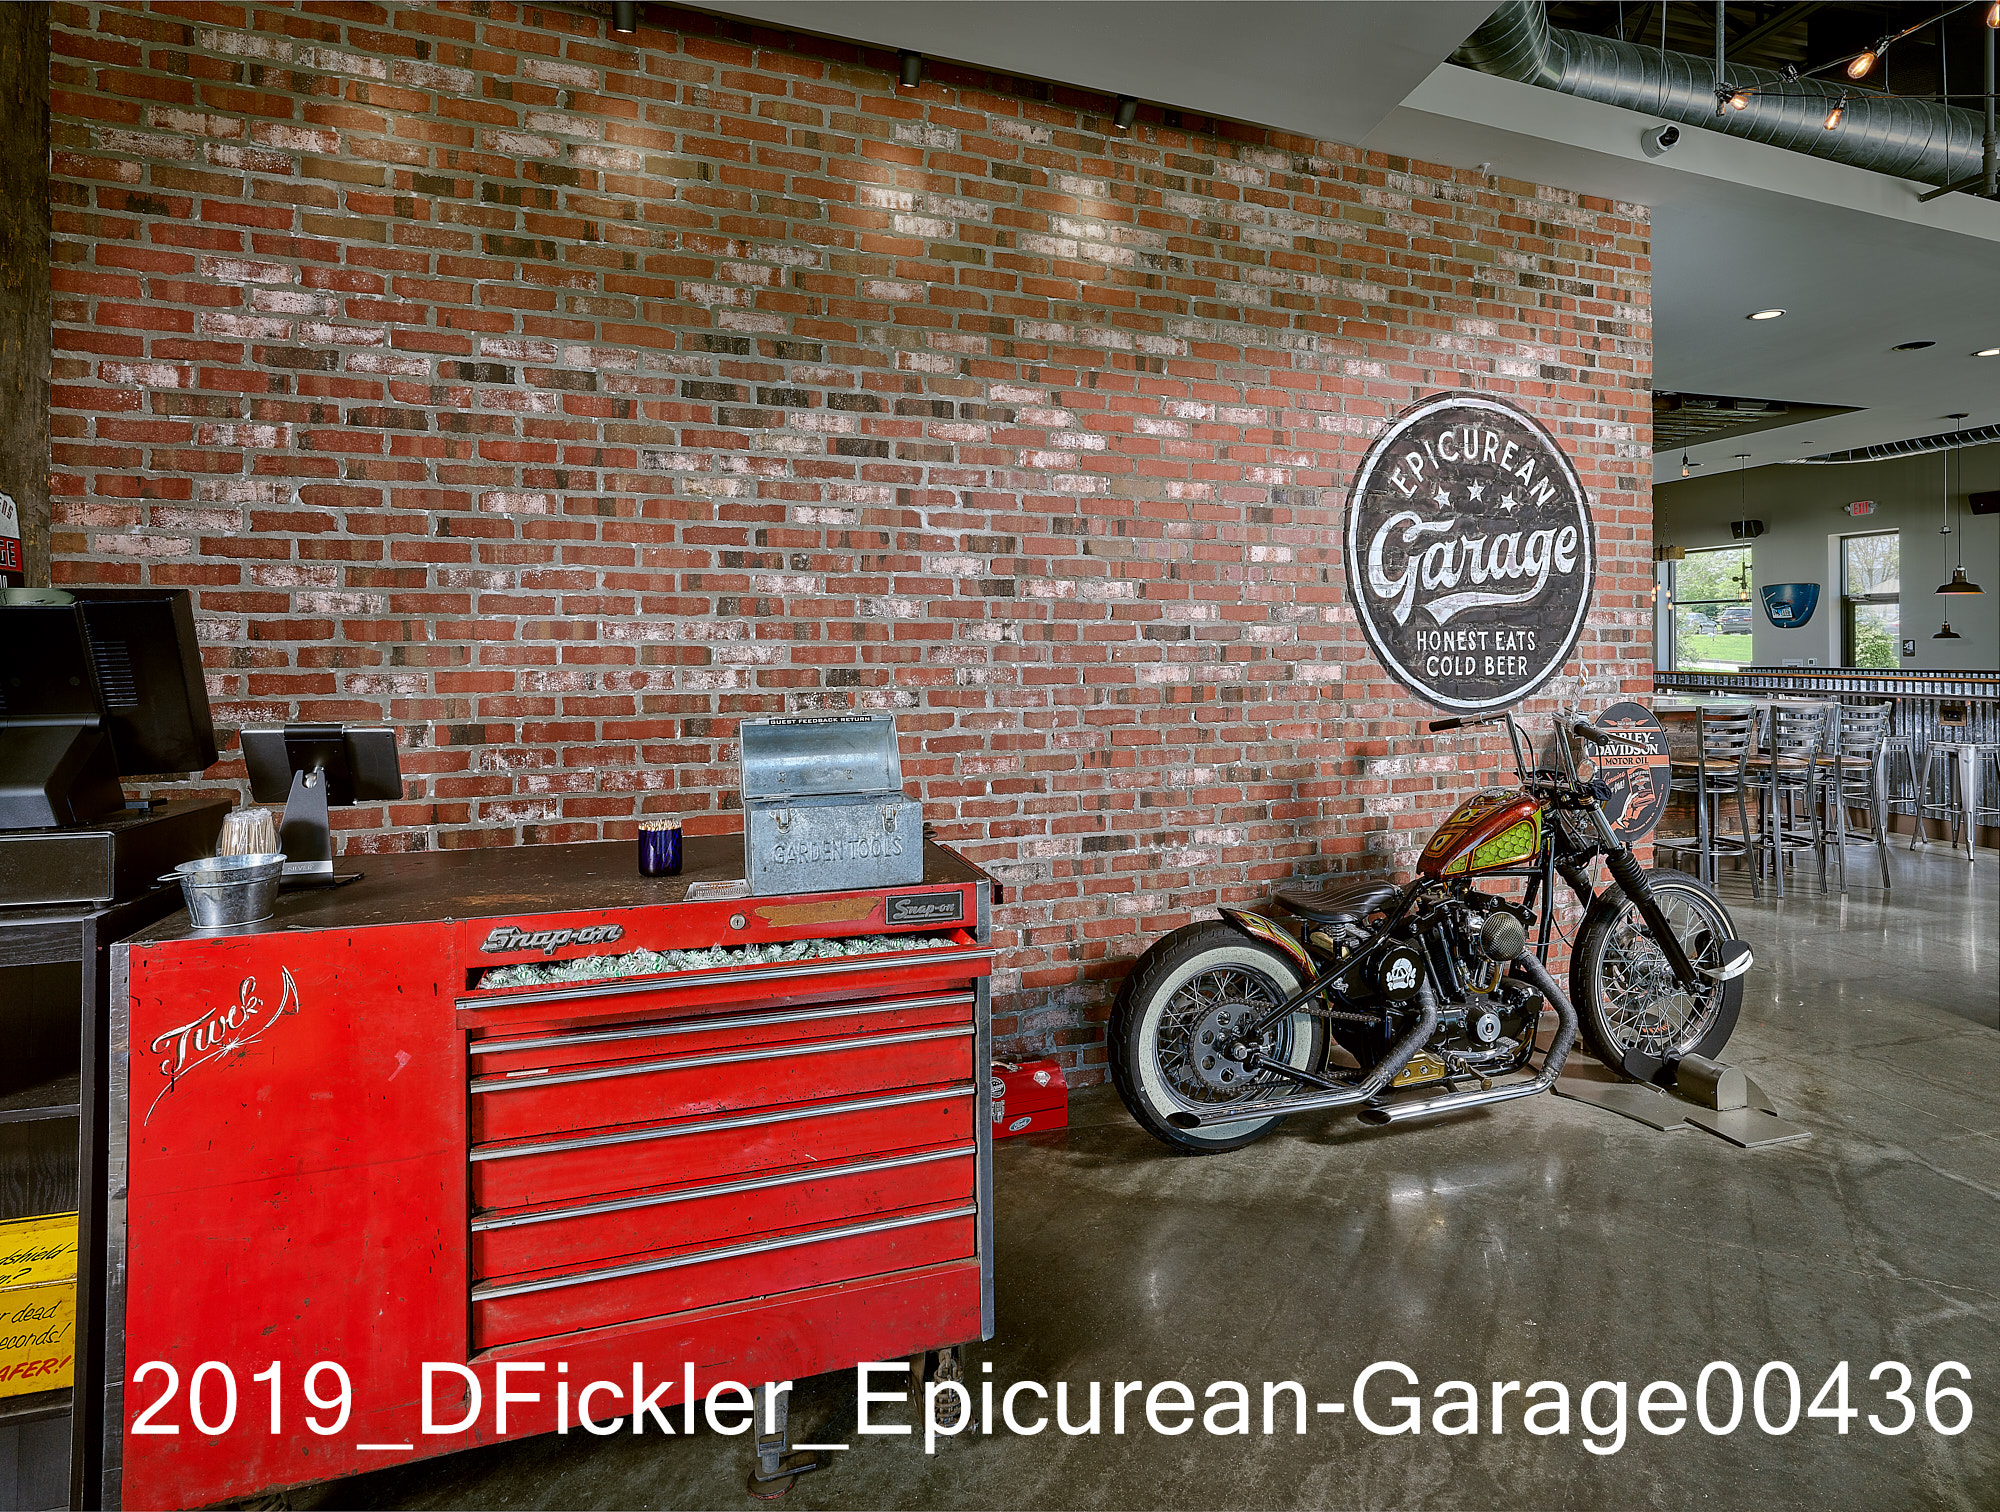 2019_DFickler_Epicurean-Garage00436.jpg